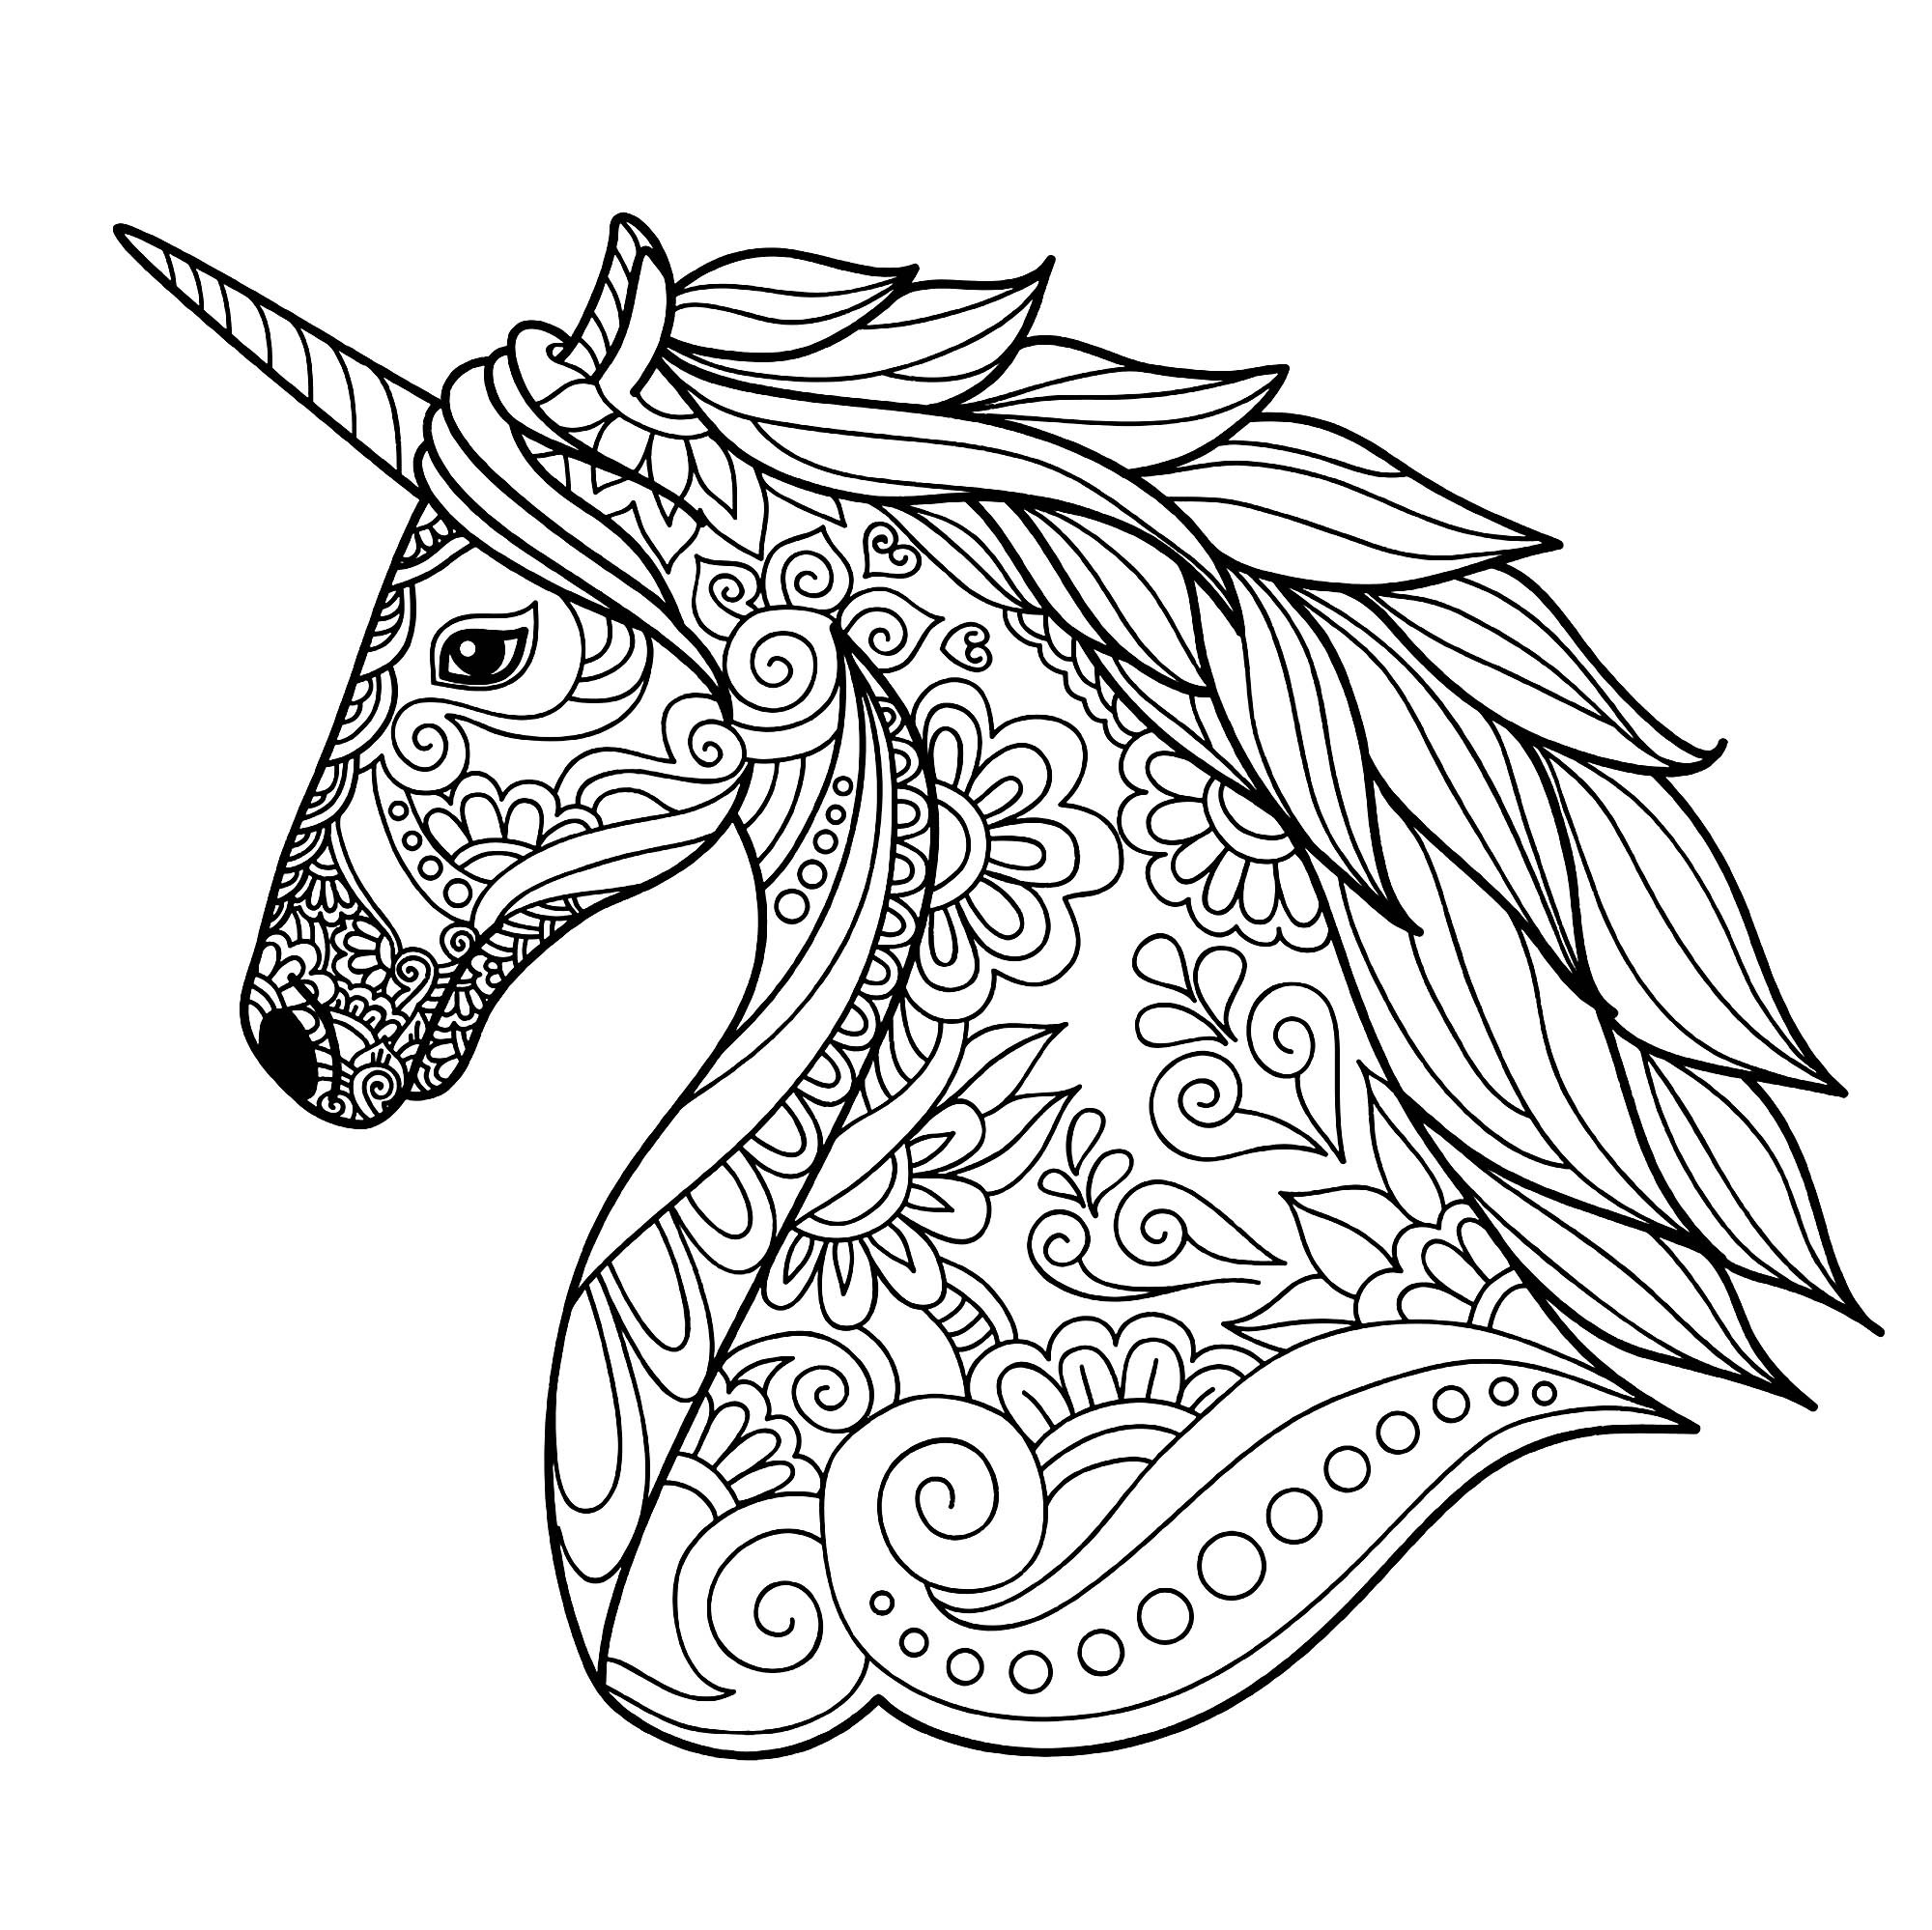 Adult Coloring Pages Unicorn  Unicorn head simple Unicorns Adult Coloring Pages